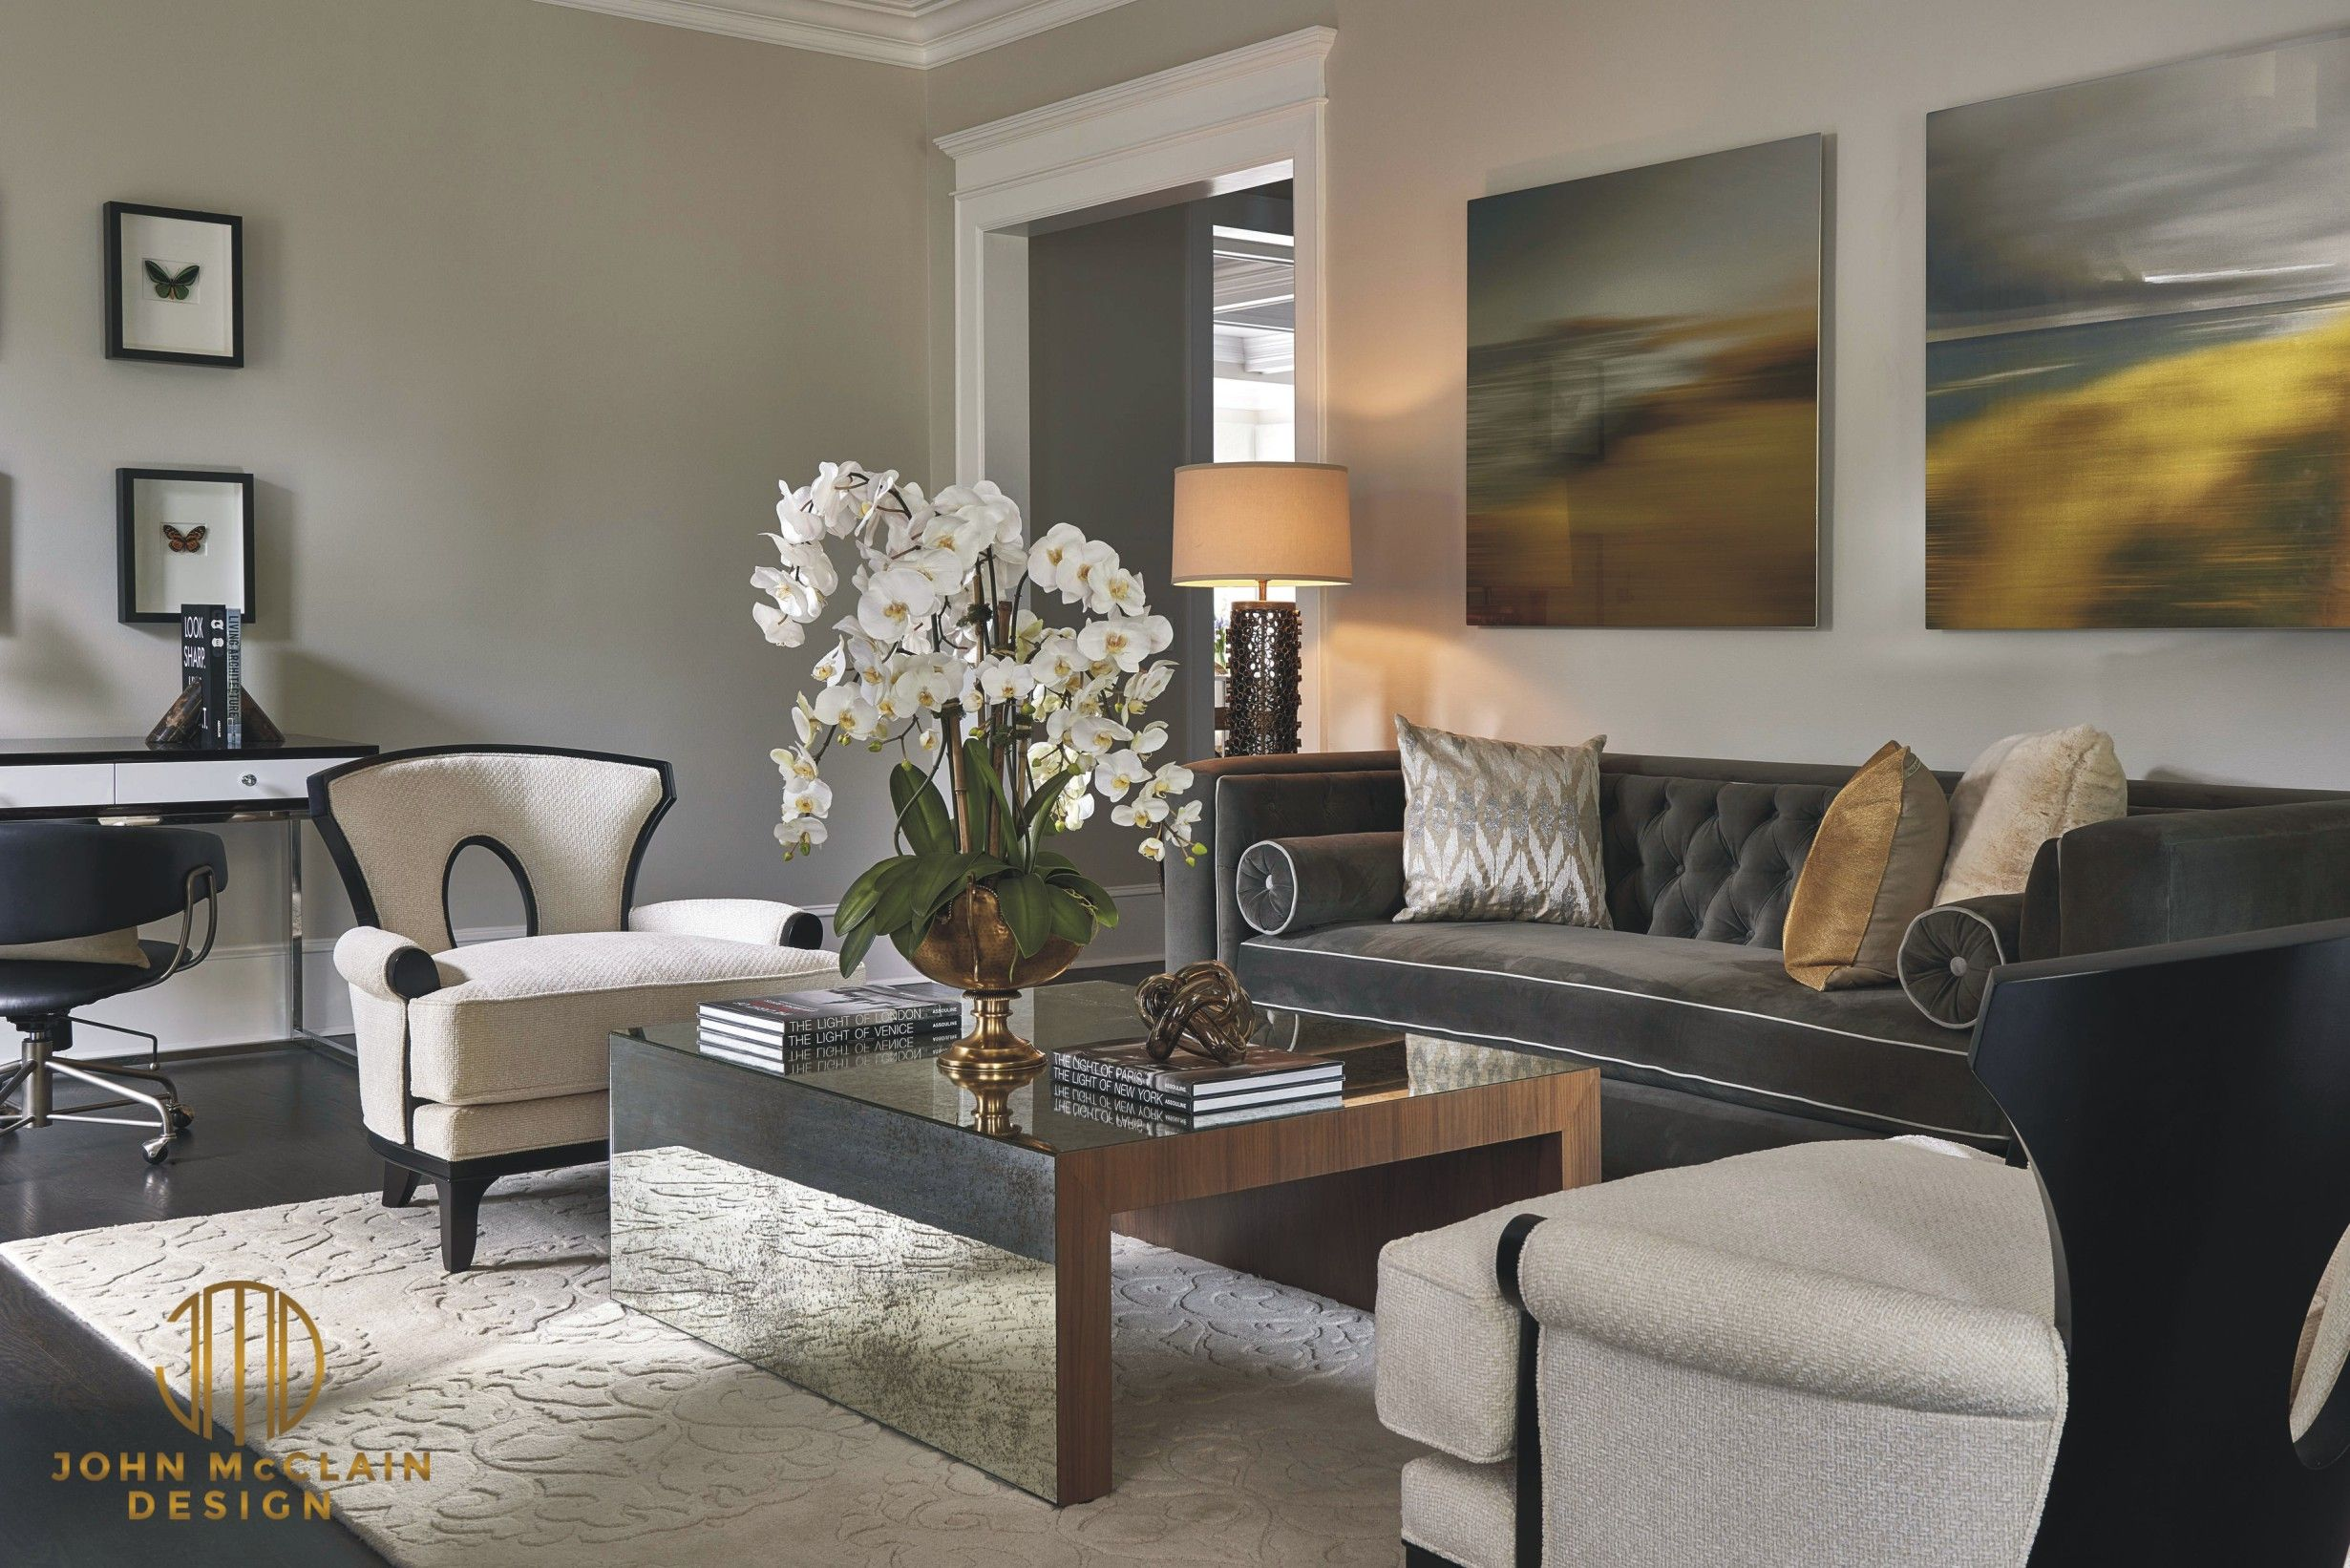 The formal living room features a custom gray Hollywood Regency style sofa from Gilded Home. Barbara Barry Chairs with textured white fabric, antique mirrored coffee table with walnut trim and carved white wool area rug provide texture and interest. Etched metal wall art in shades of gold and silver are accented by the pillows on the sofa. Stephen Allen Photography